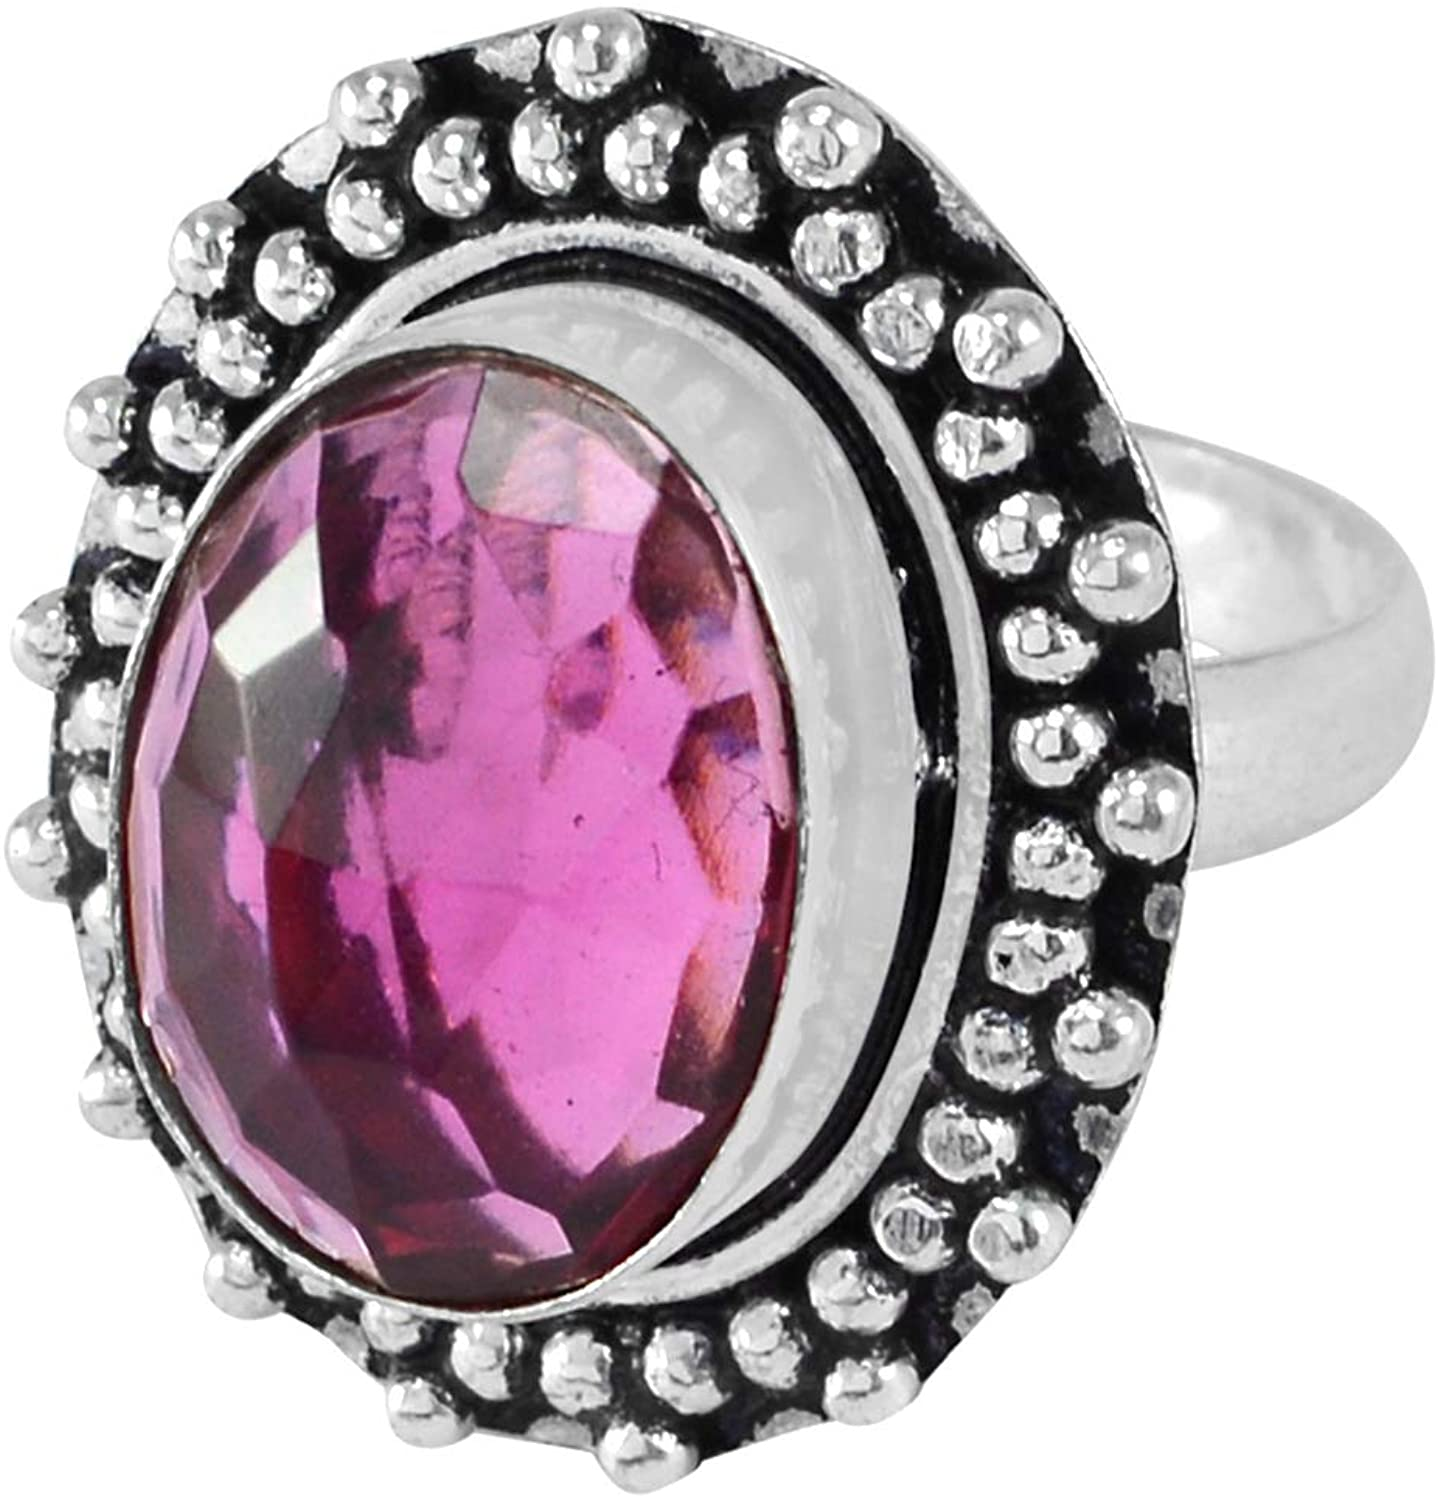 Silvesto India Pink Quartz Ring, Handmade Jewelry Manufacturer 925 Silver Plated, Vintage Style Ring, Statement Jewelry, Dainty Ring Sz 8 Jaipur Rajasthan India